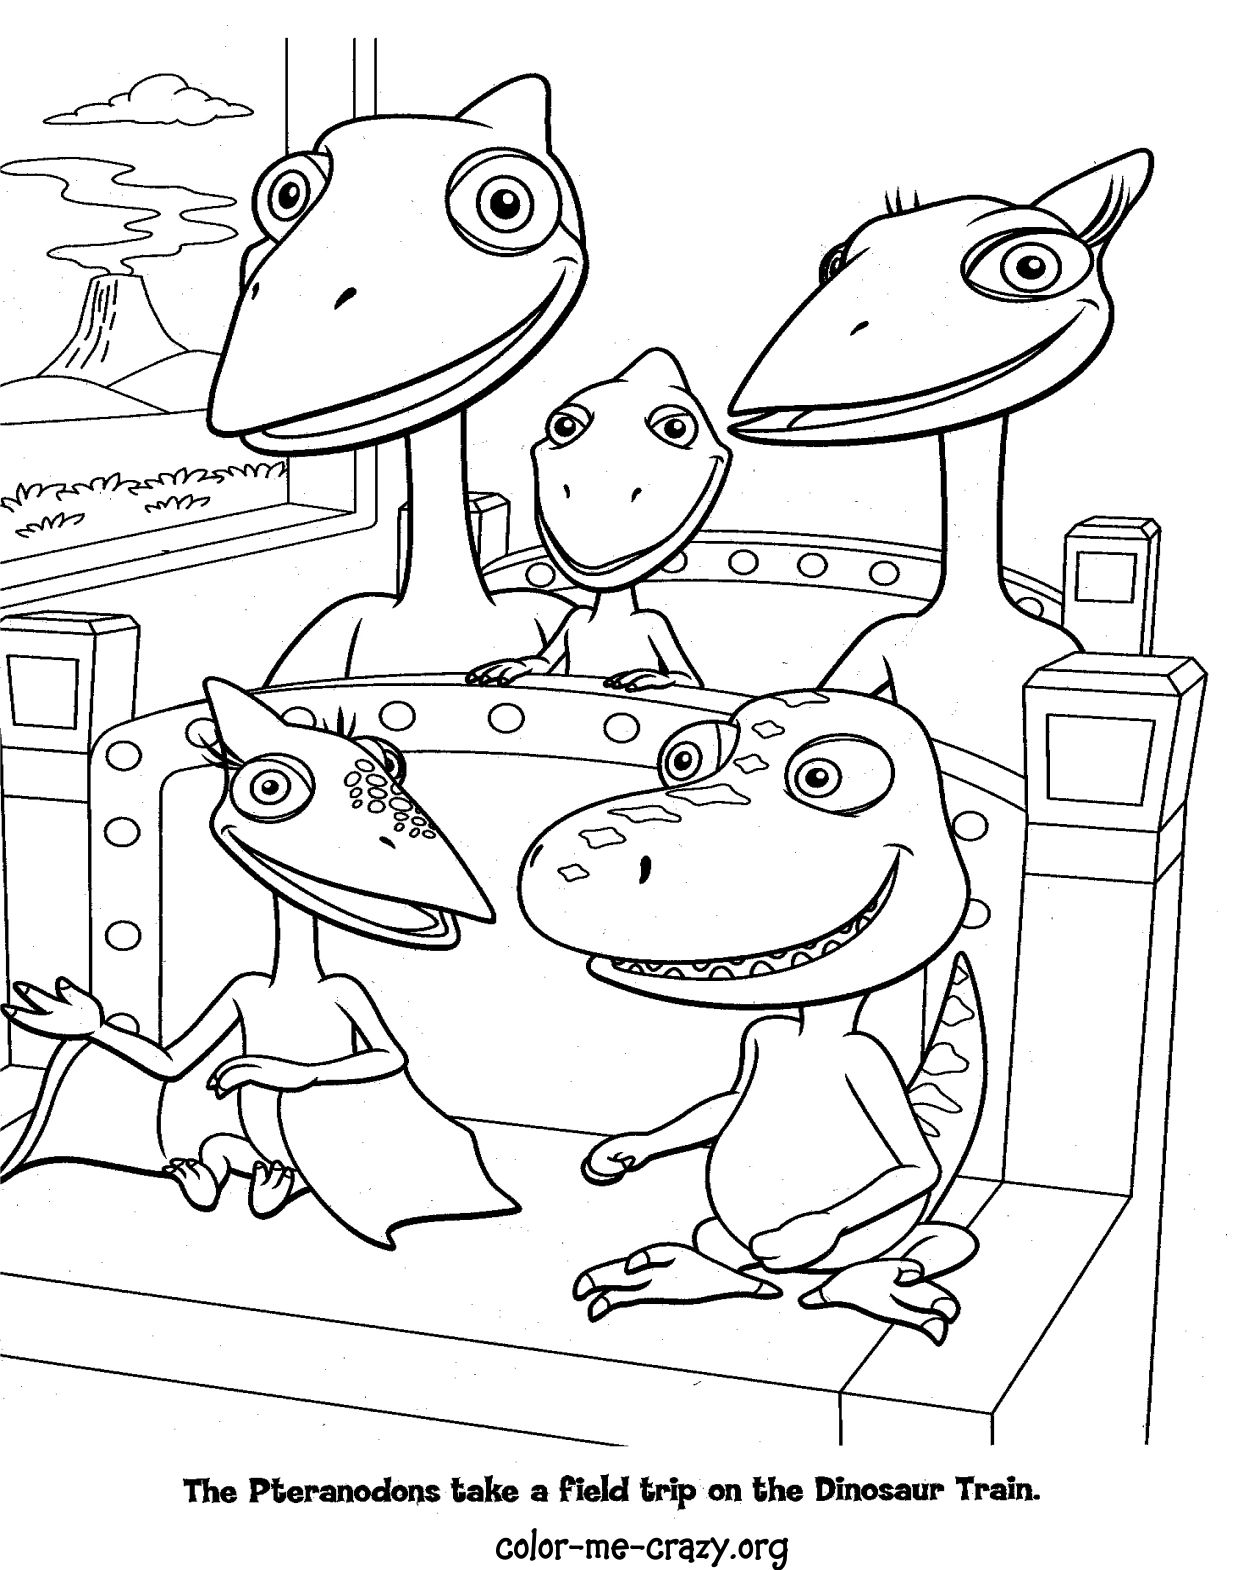 dinosaur train coloring pages dongs - photo#10